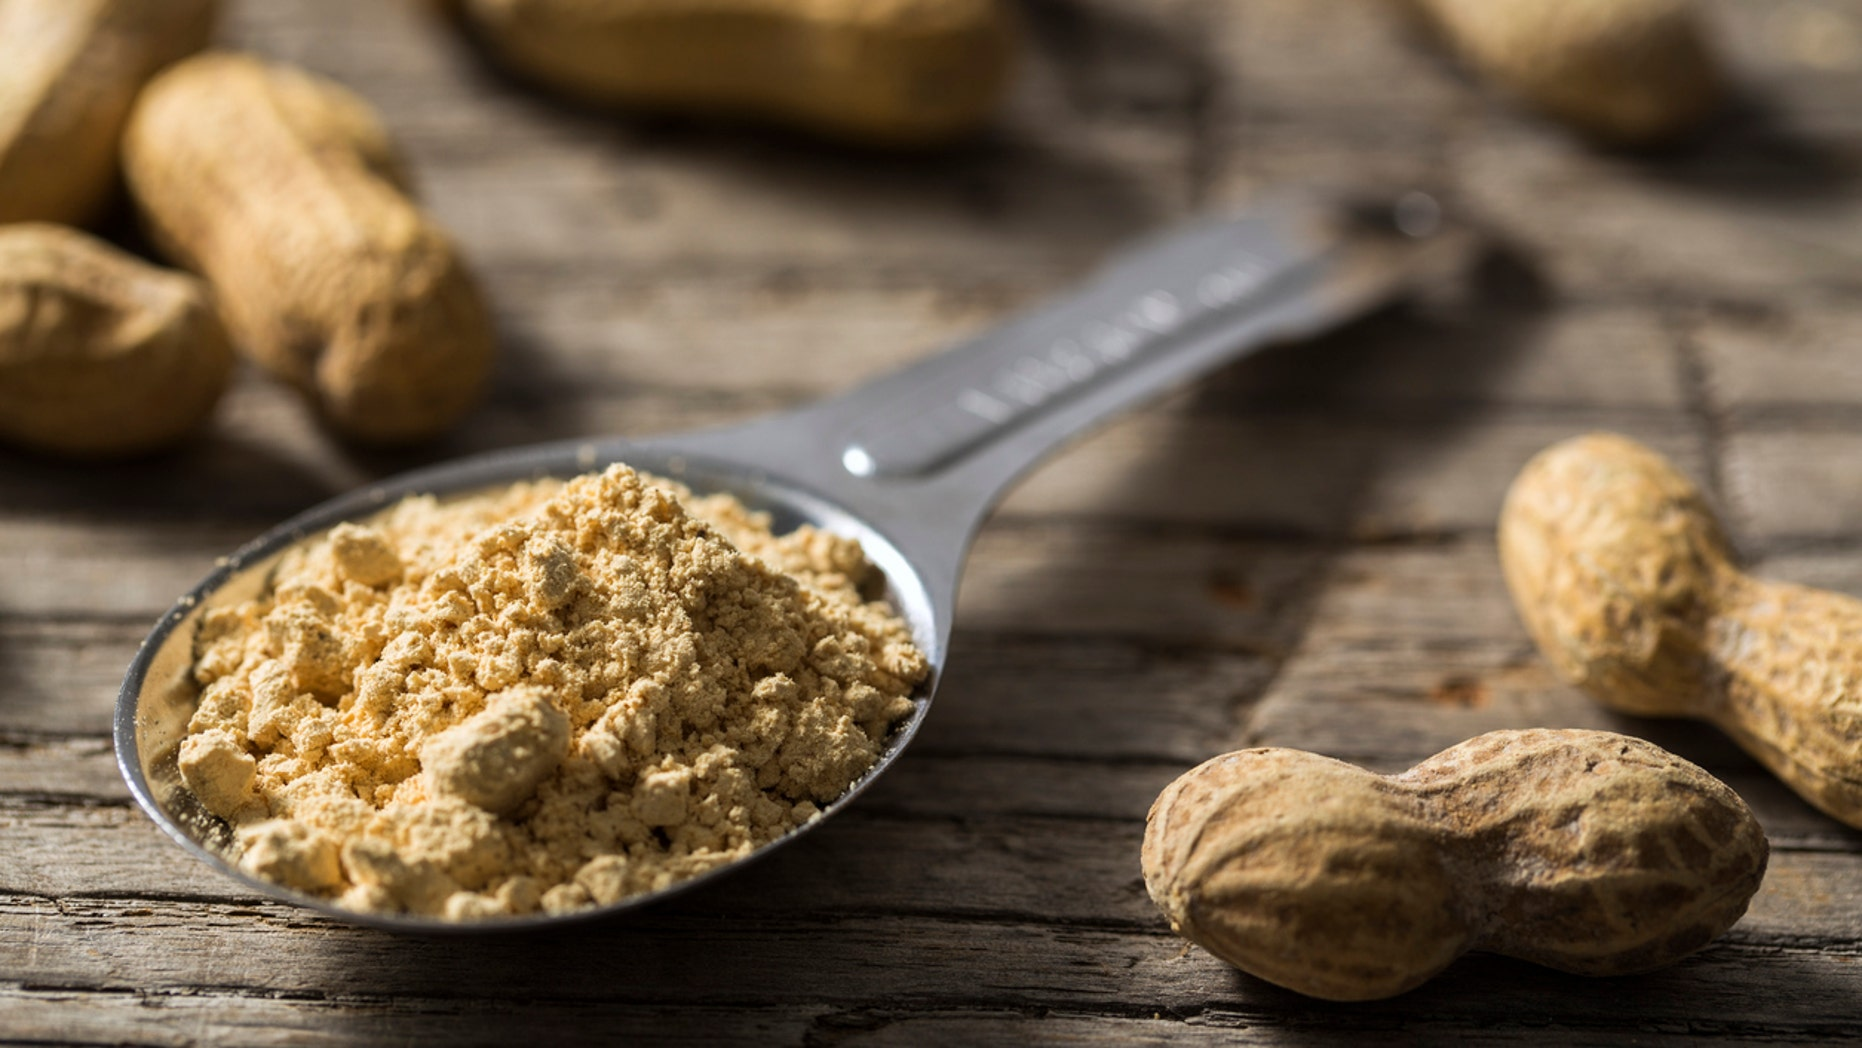 You should still always consult with your doctor before feeding your child peanut butter or peanut-containing products for the fist time